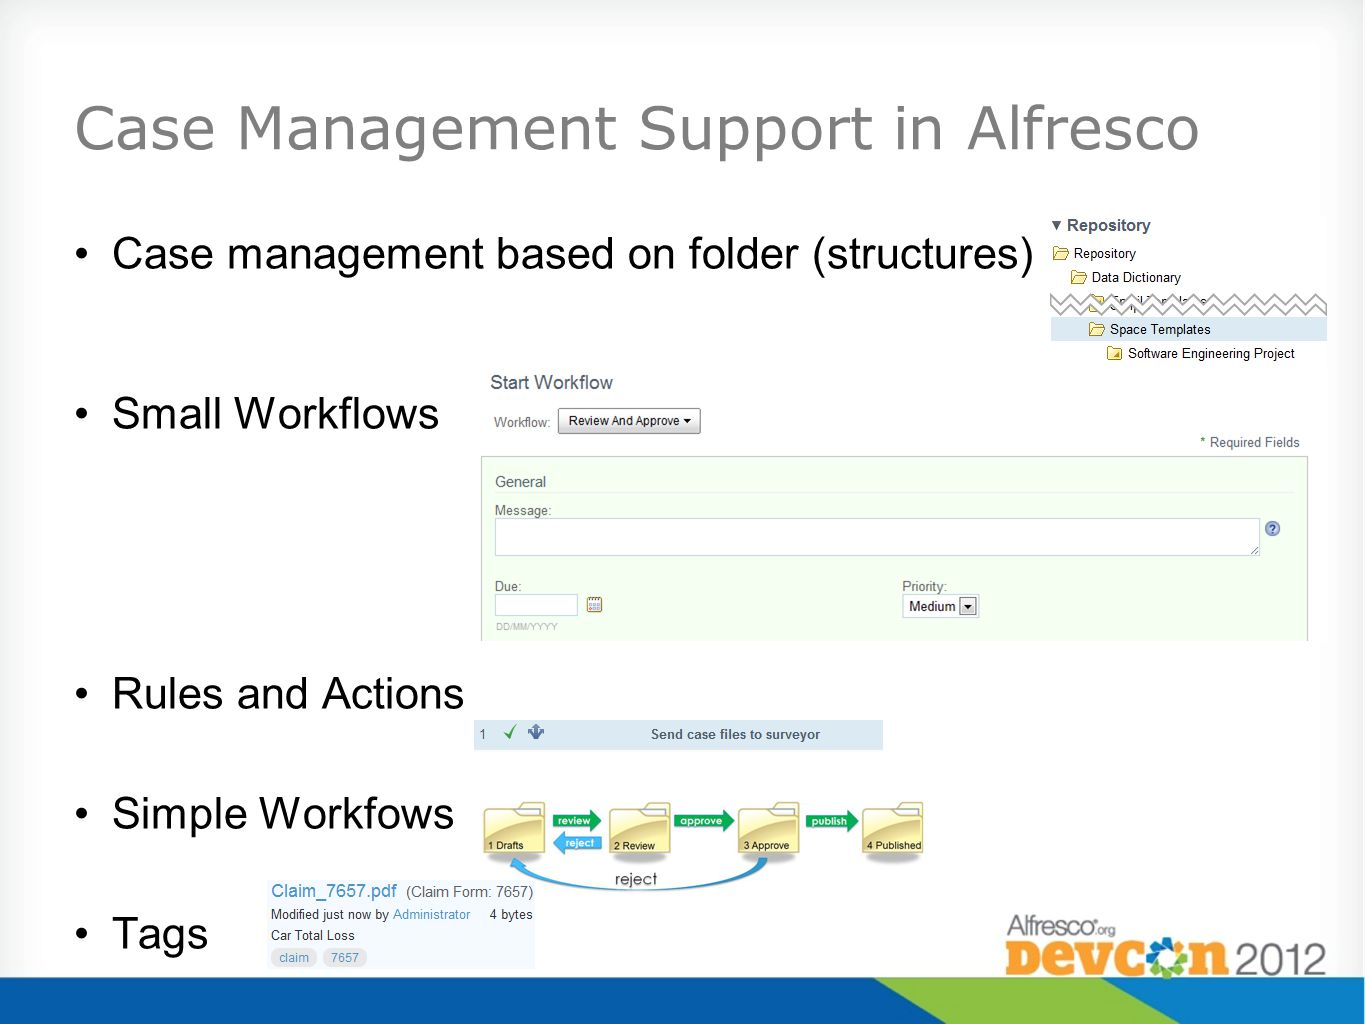 Case Management Support in Alfresco